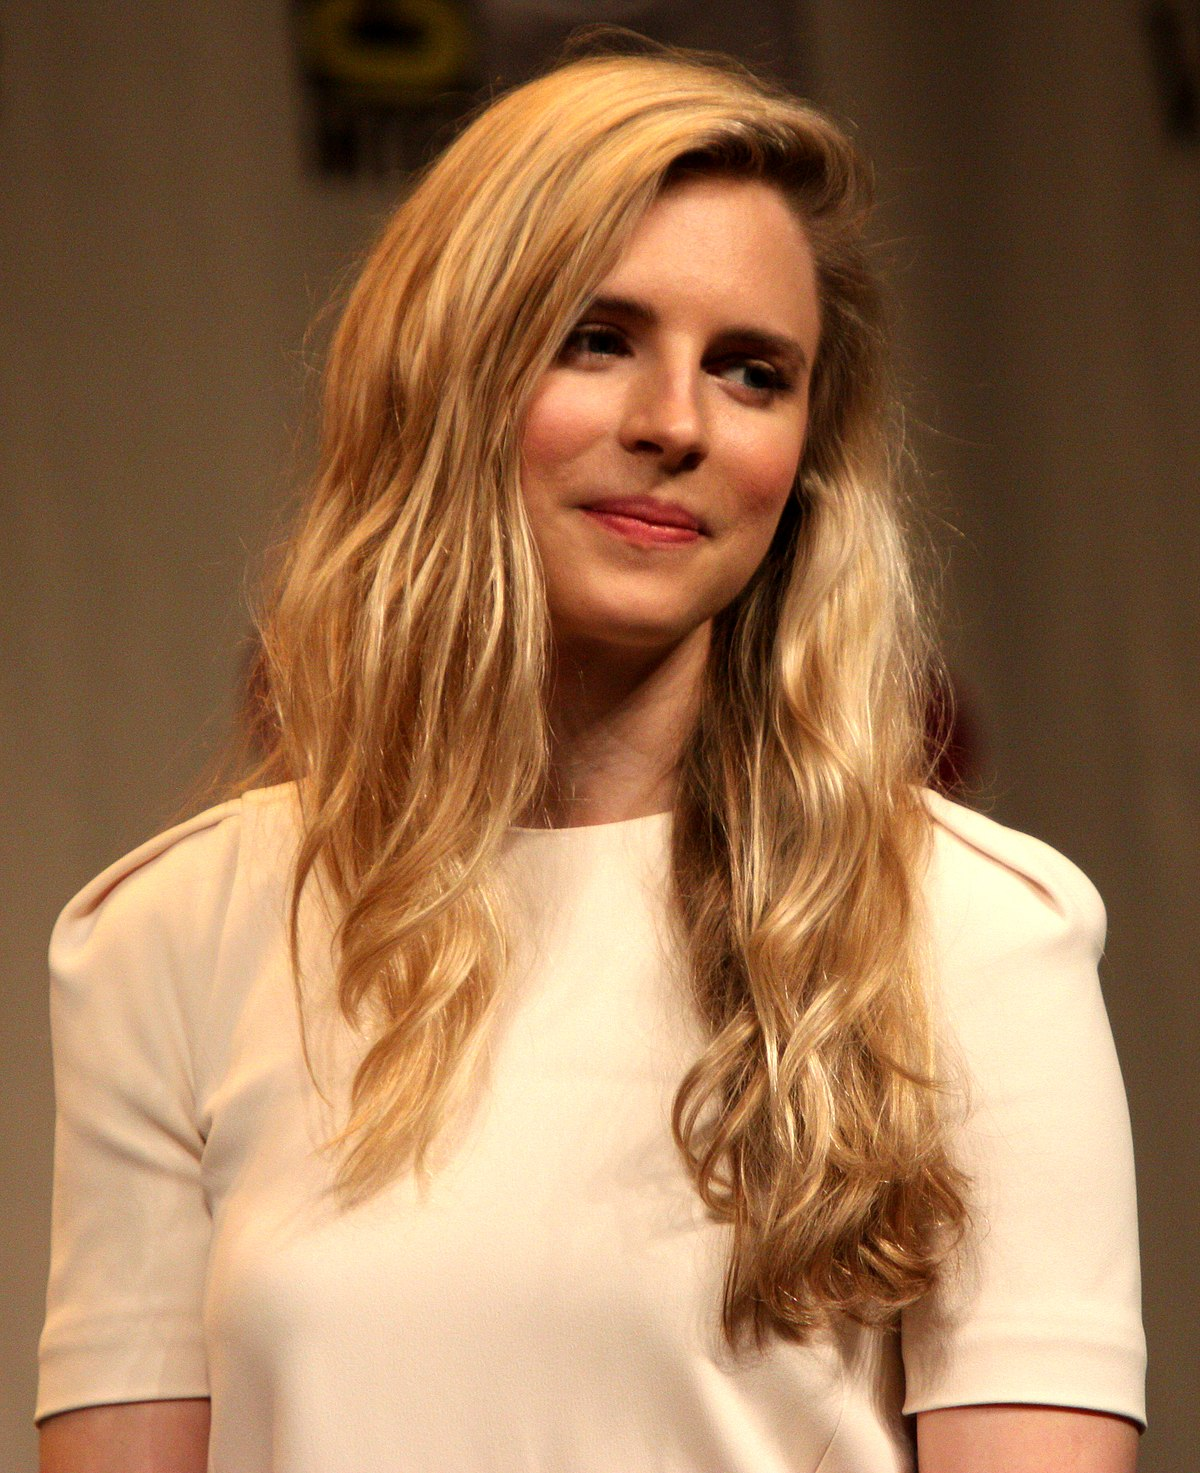 Brit Marling nudes (73 photos), hot Sexy, YouTube, braless 2015